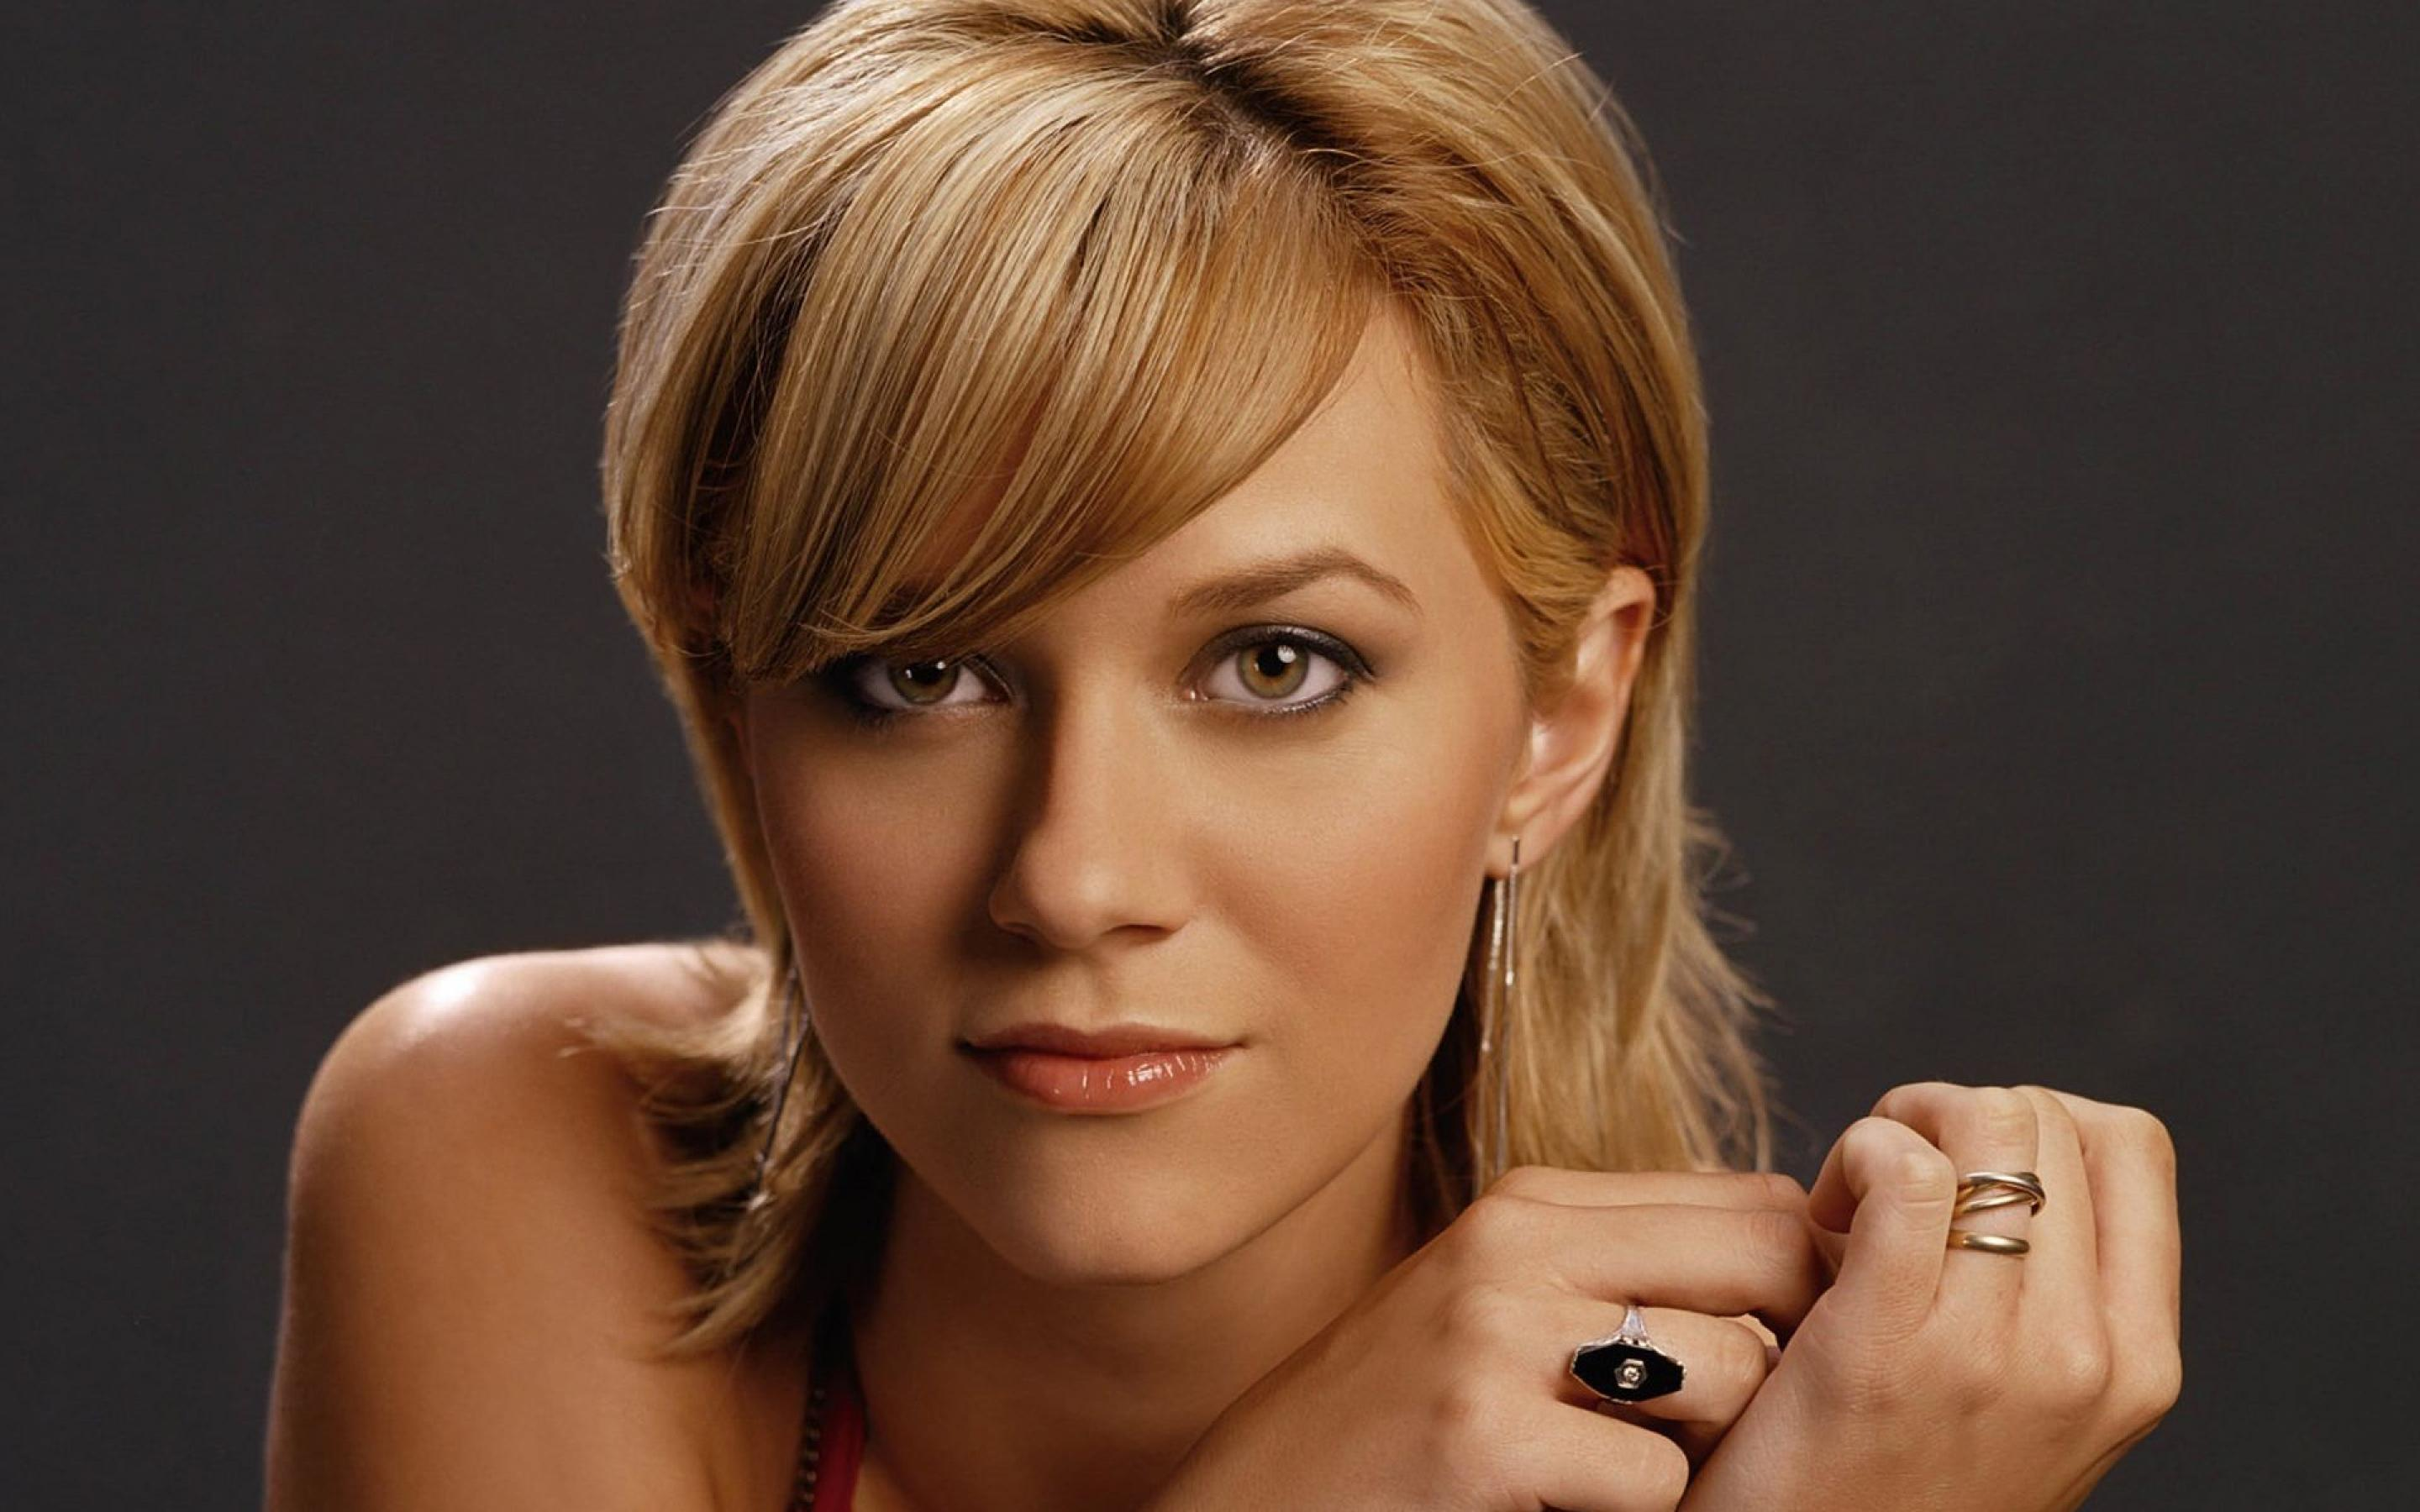 Hilarie burton wallpapers pictures images - Celeb wallpapers ...